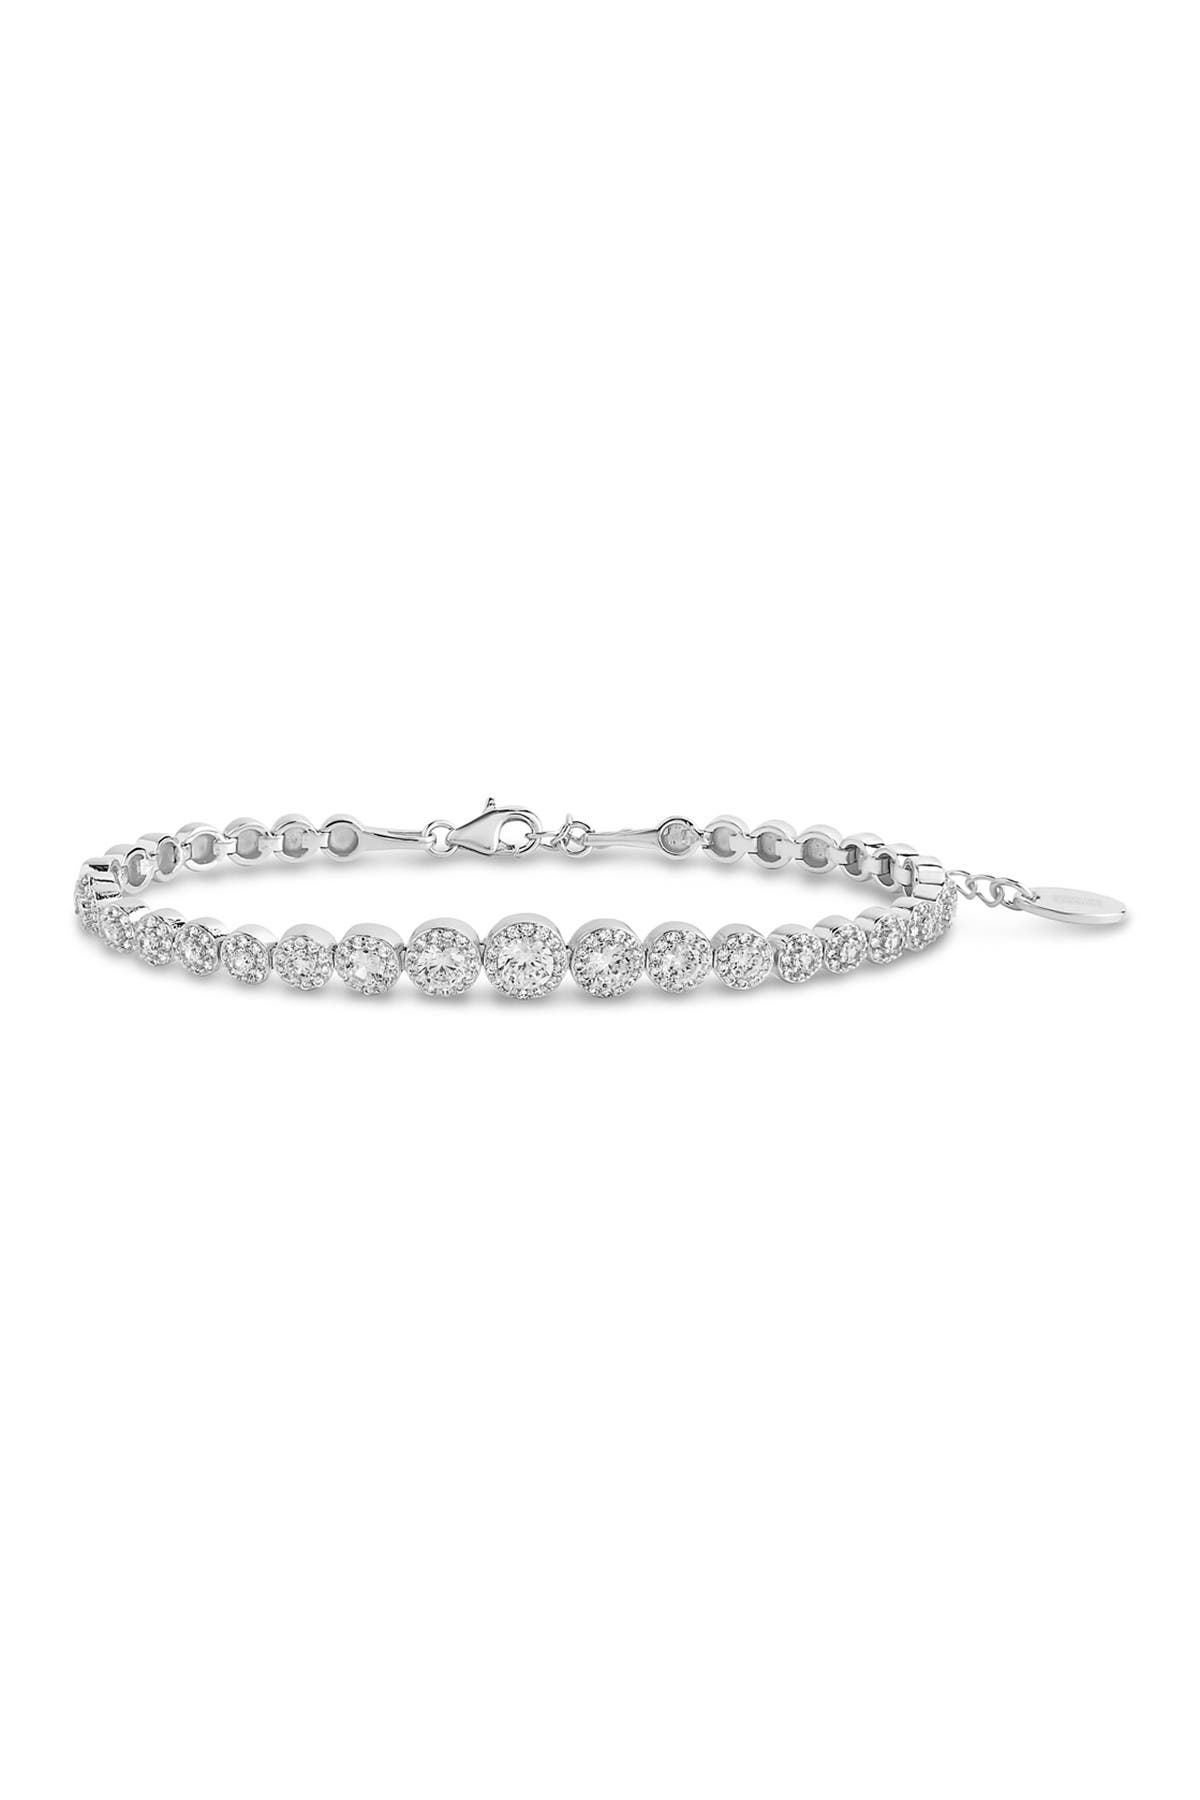 Image of Sterling Forever Rhodium Plated Brass CZ Graduated Halo Tennis Bracelet